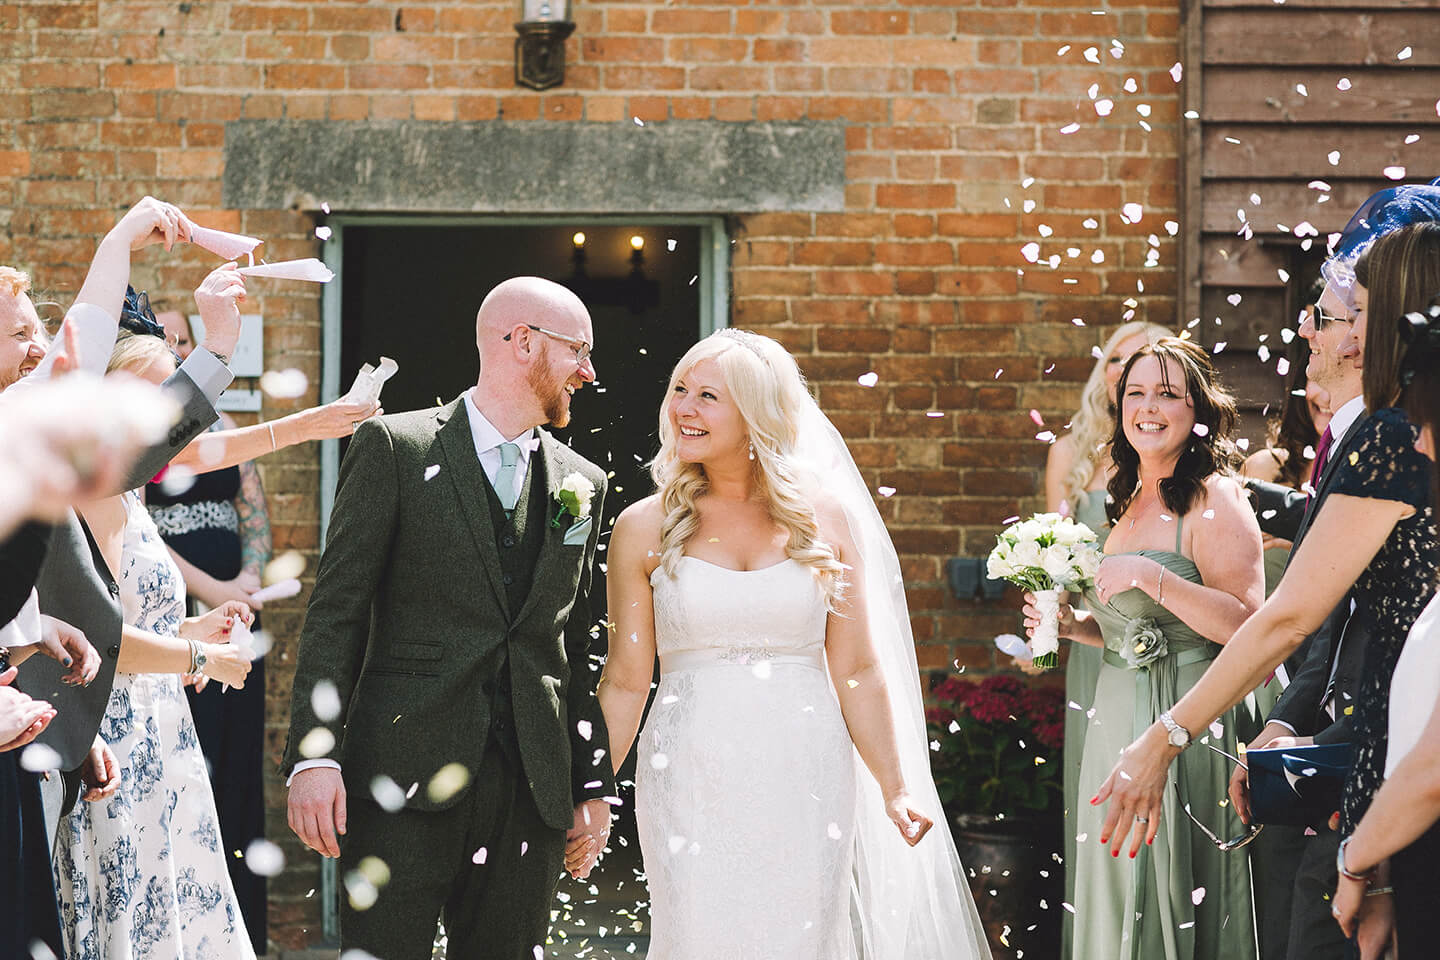 Guests congratulate the couple with wedding confetti as they leave the wedding ceremony